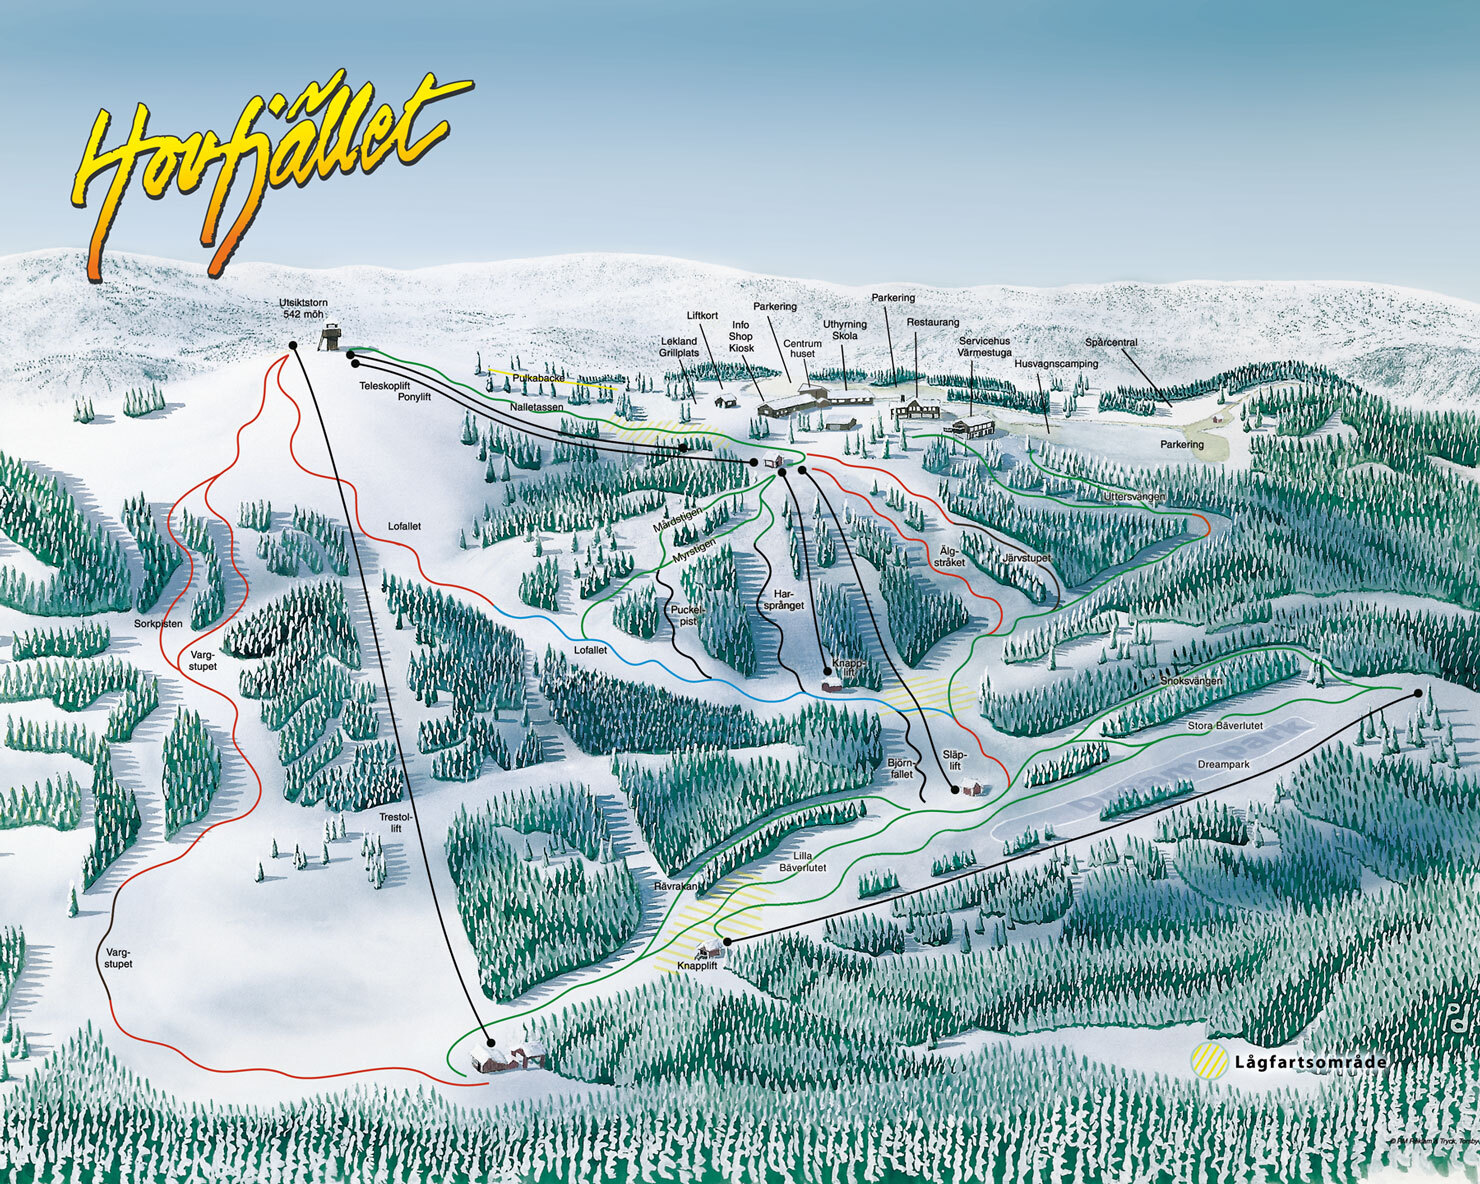 Hovfjället Piste / Trail Map